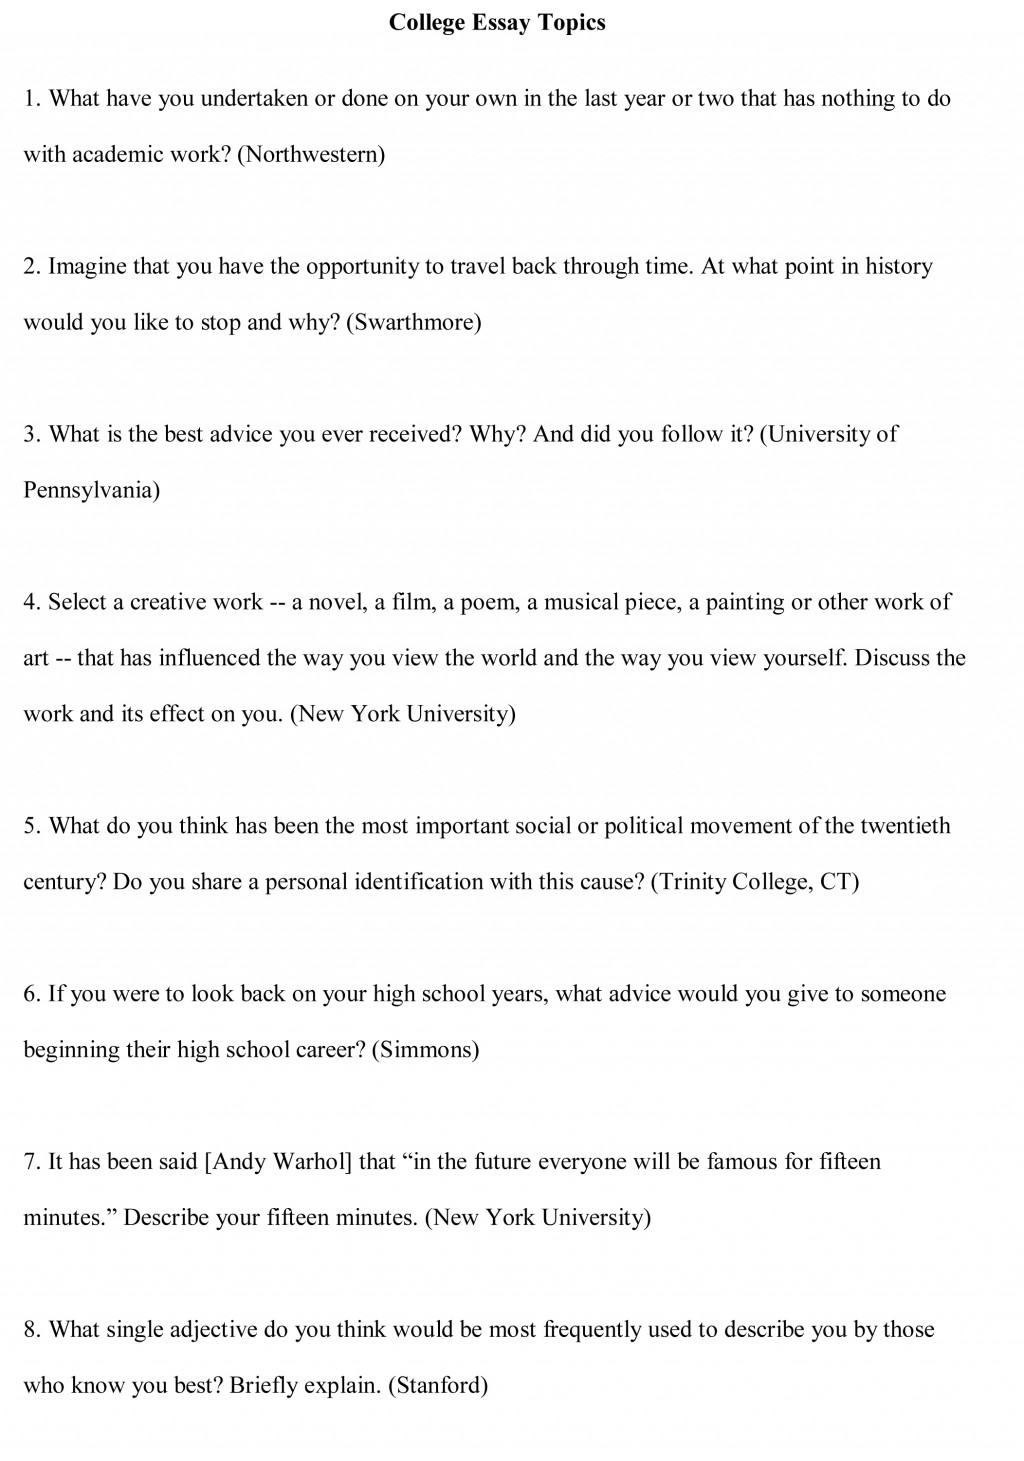 002 Topics To Write About For College Essay Example Free Stirring Essays Application Large